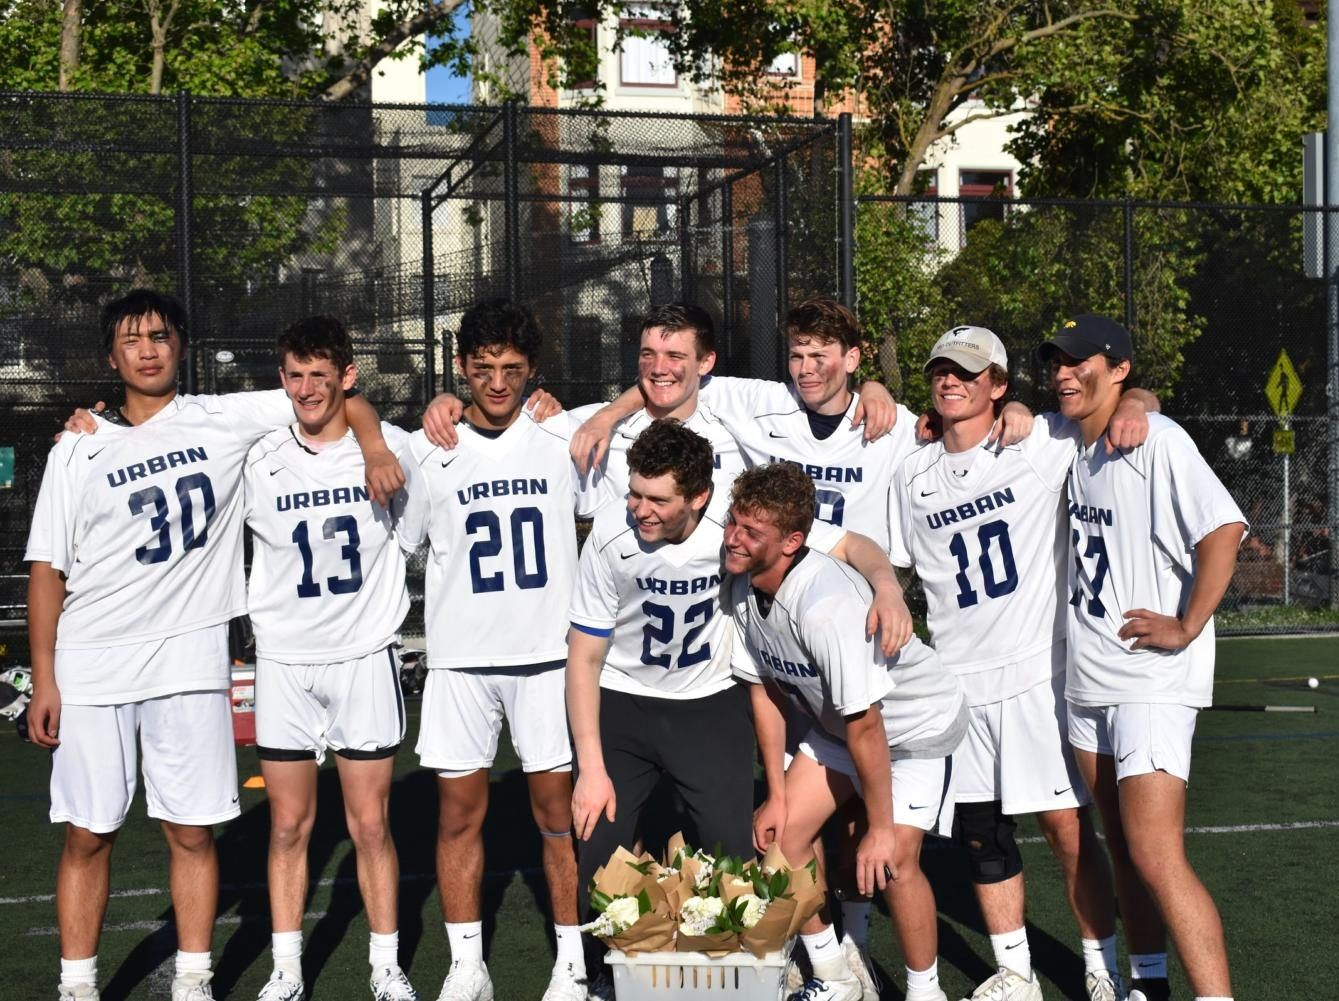 Urban boys lacrosse players gather for a photo after a game. Photo credit: Tikloh Bruno-Basaing.